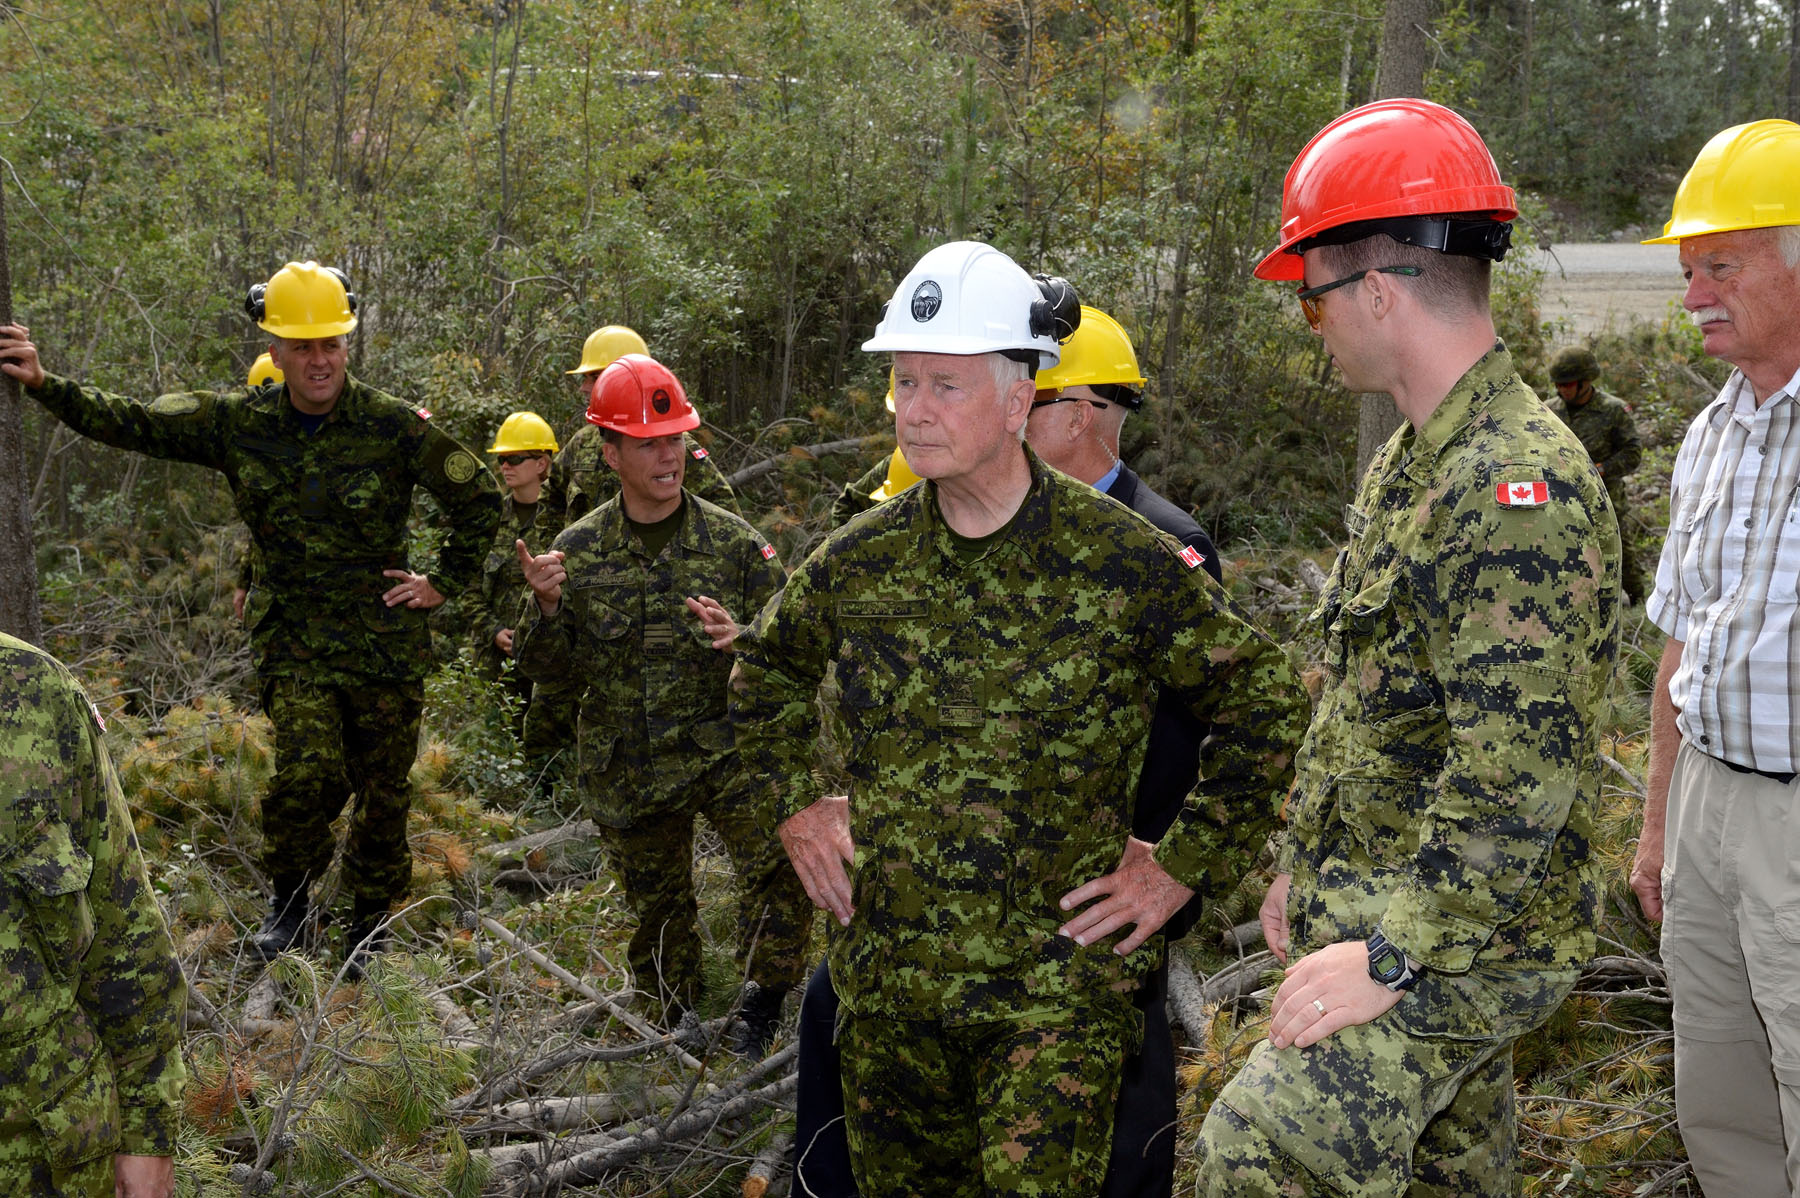 The Governor General then travelled to Copper Ridge to observe sprinkler line operations.